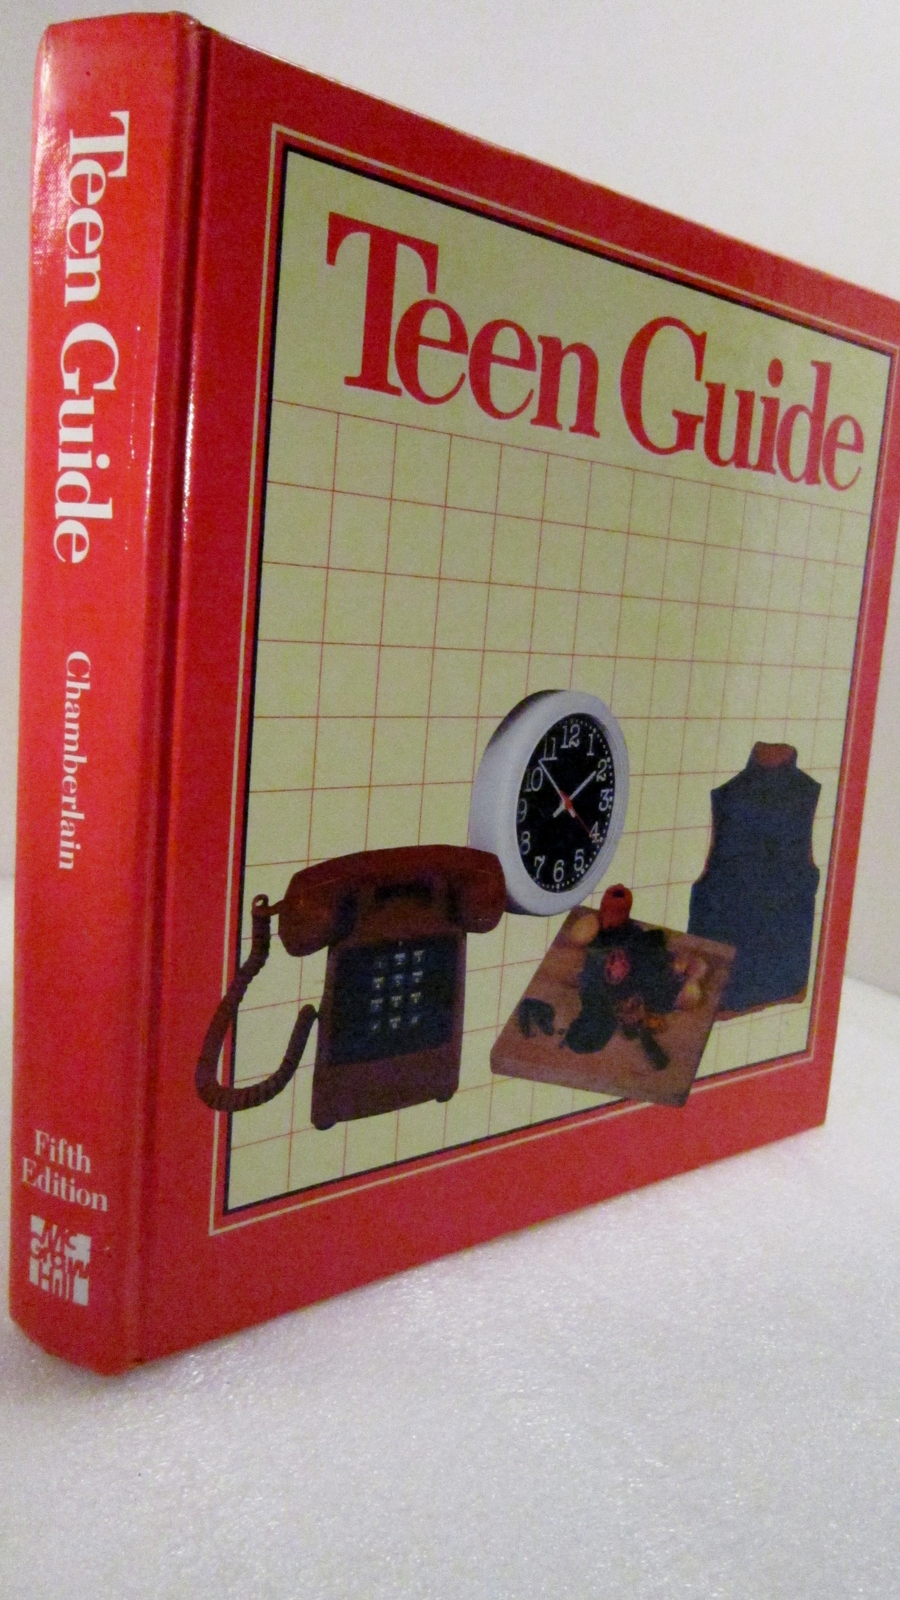 Teen_guide_1982_valerie_chamberlain__intro_home_economics_01